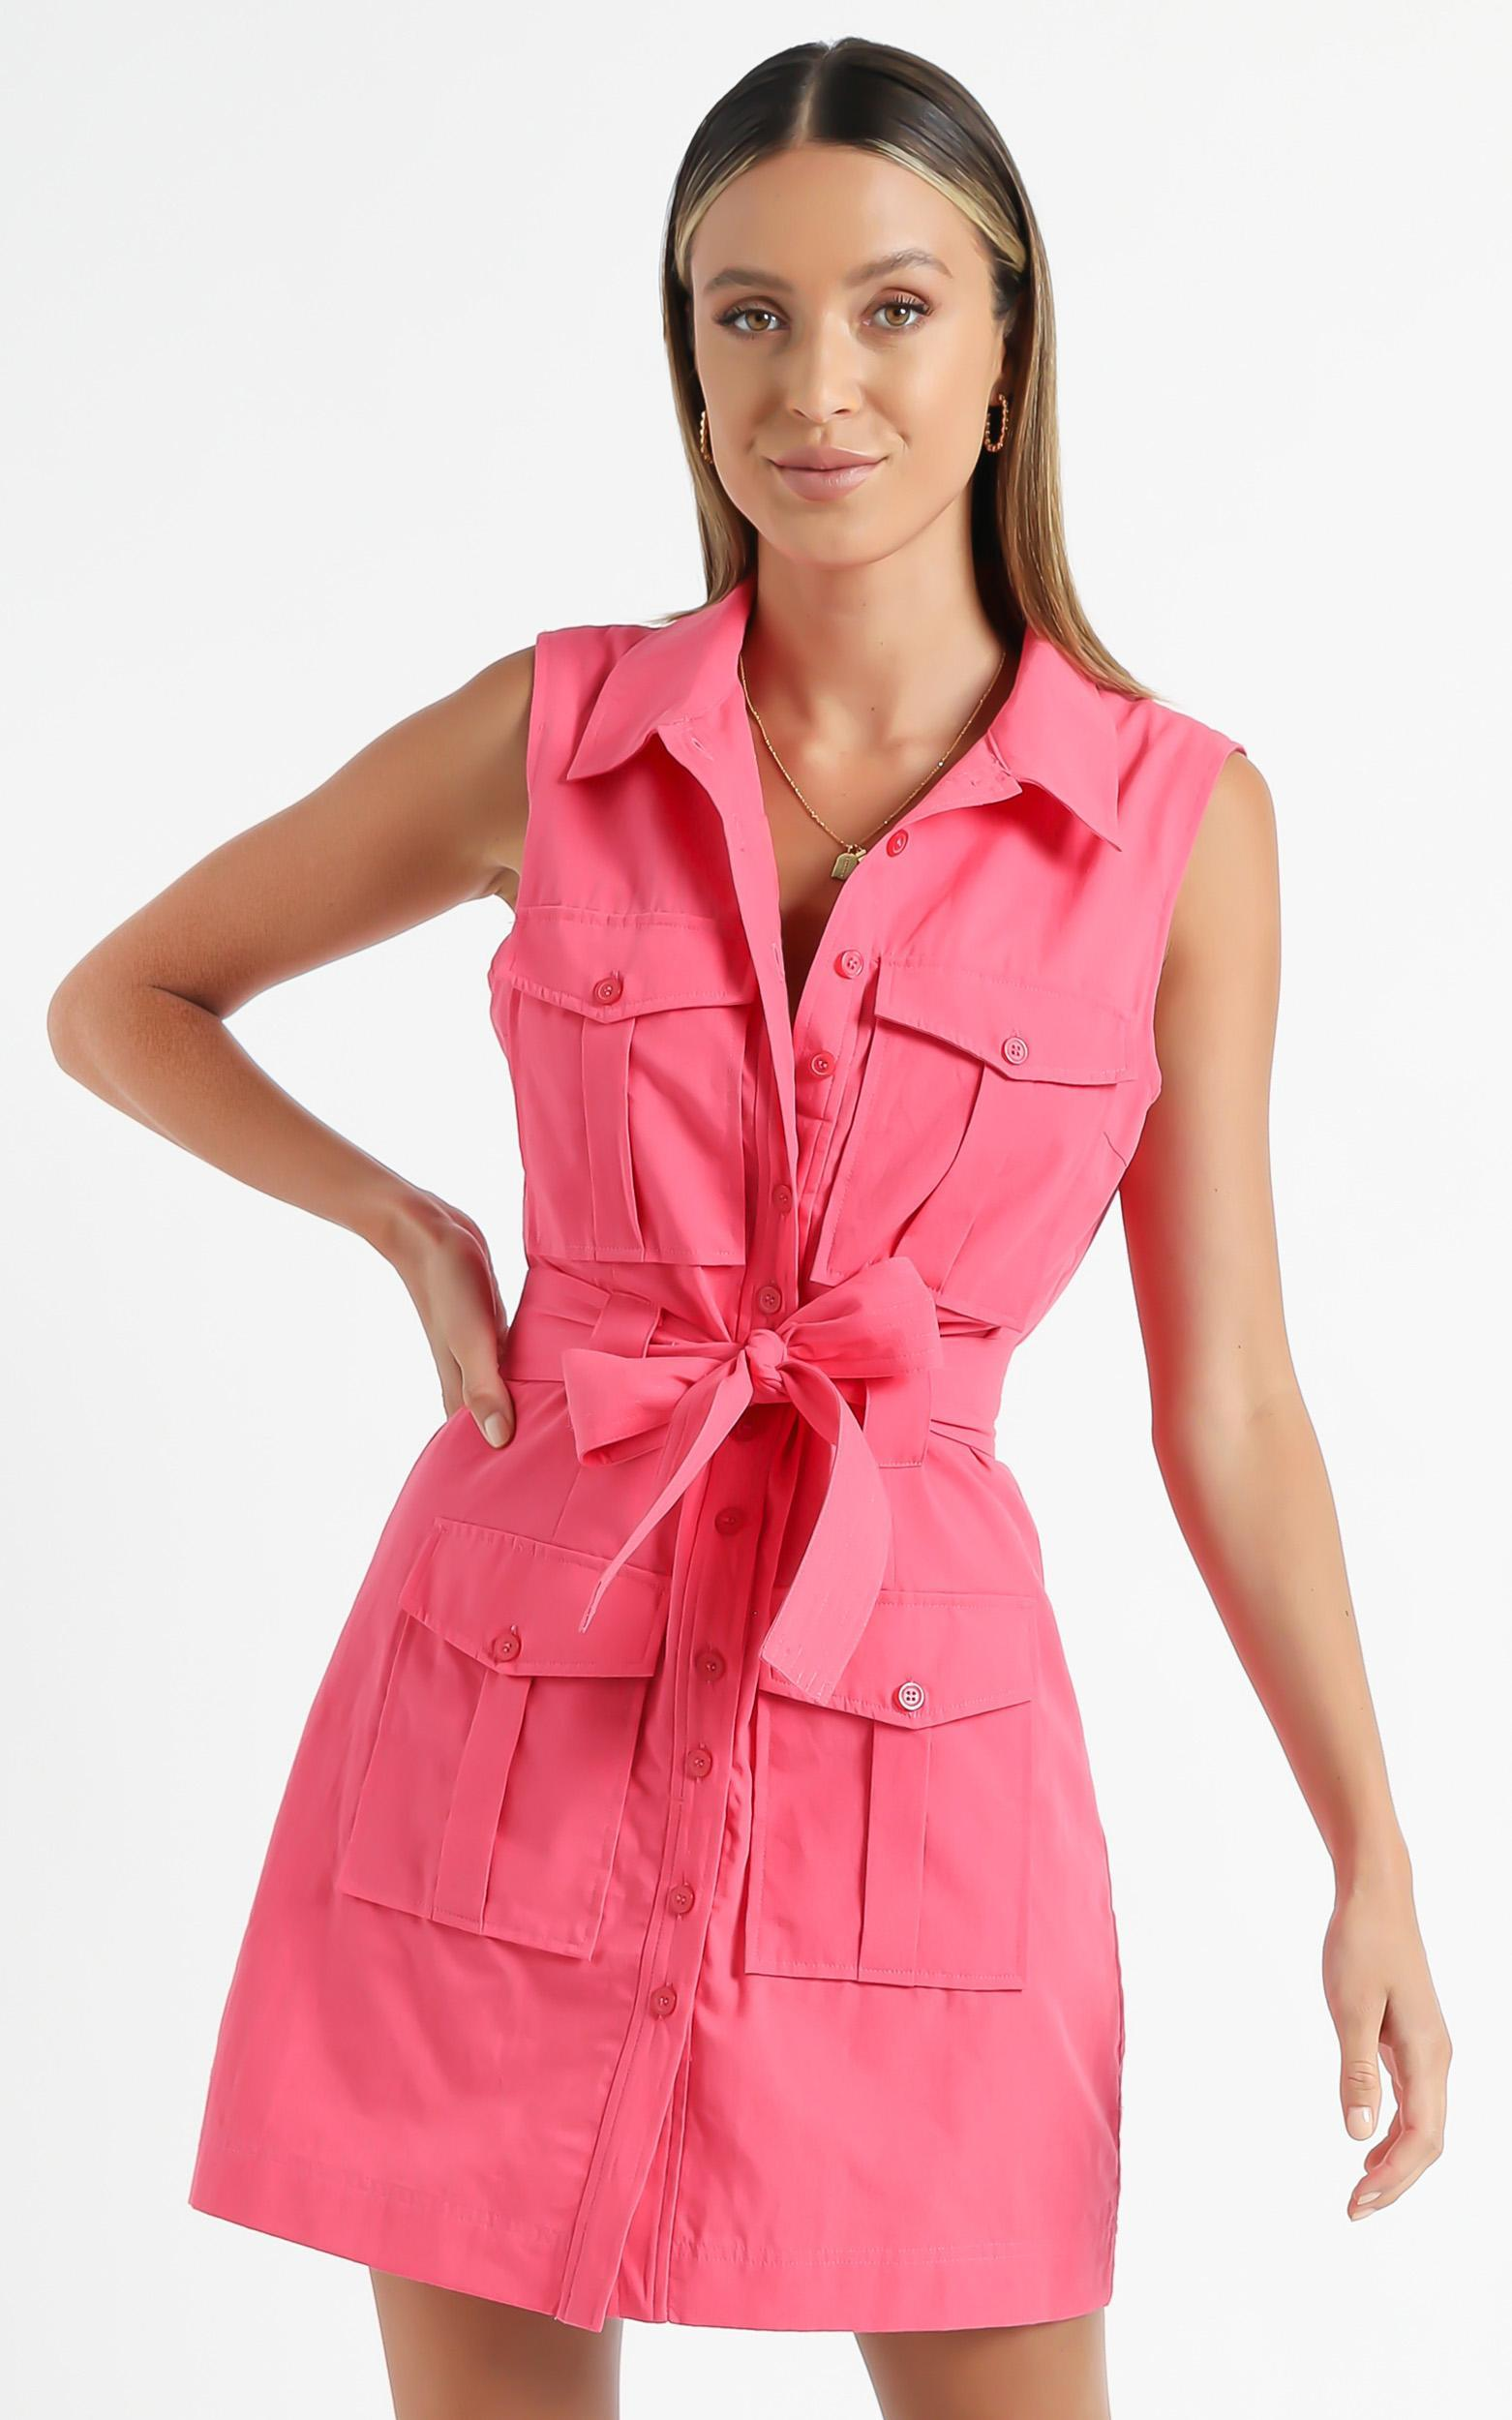 Turbina Dress in Pink - 6 (XS), Pink, hi-res image number null